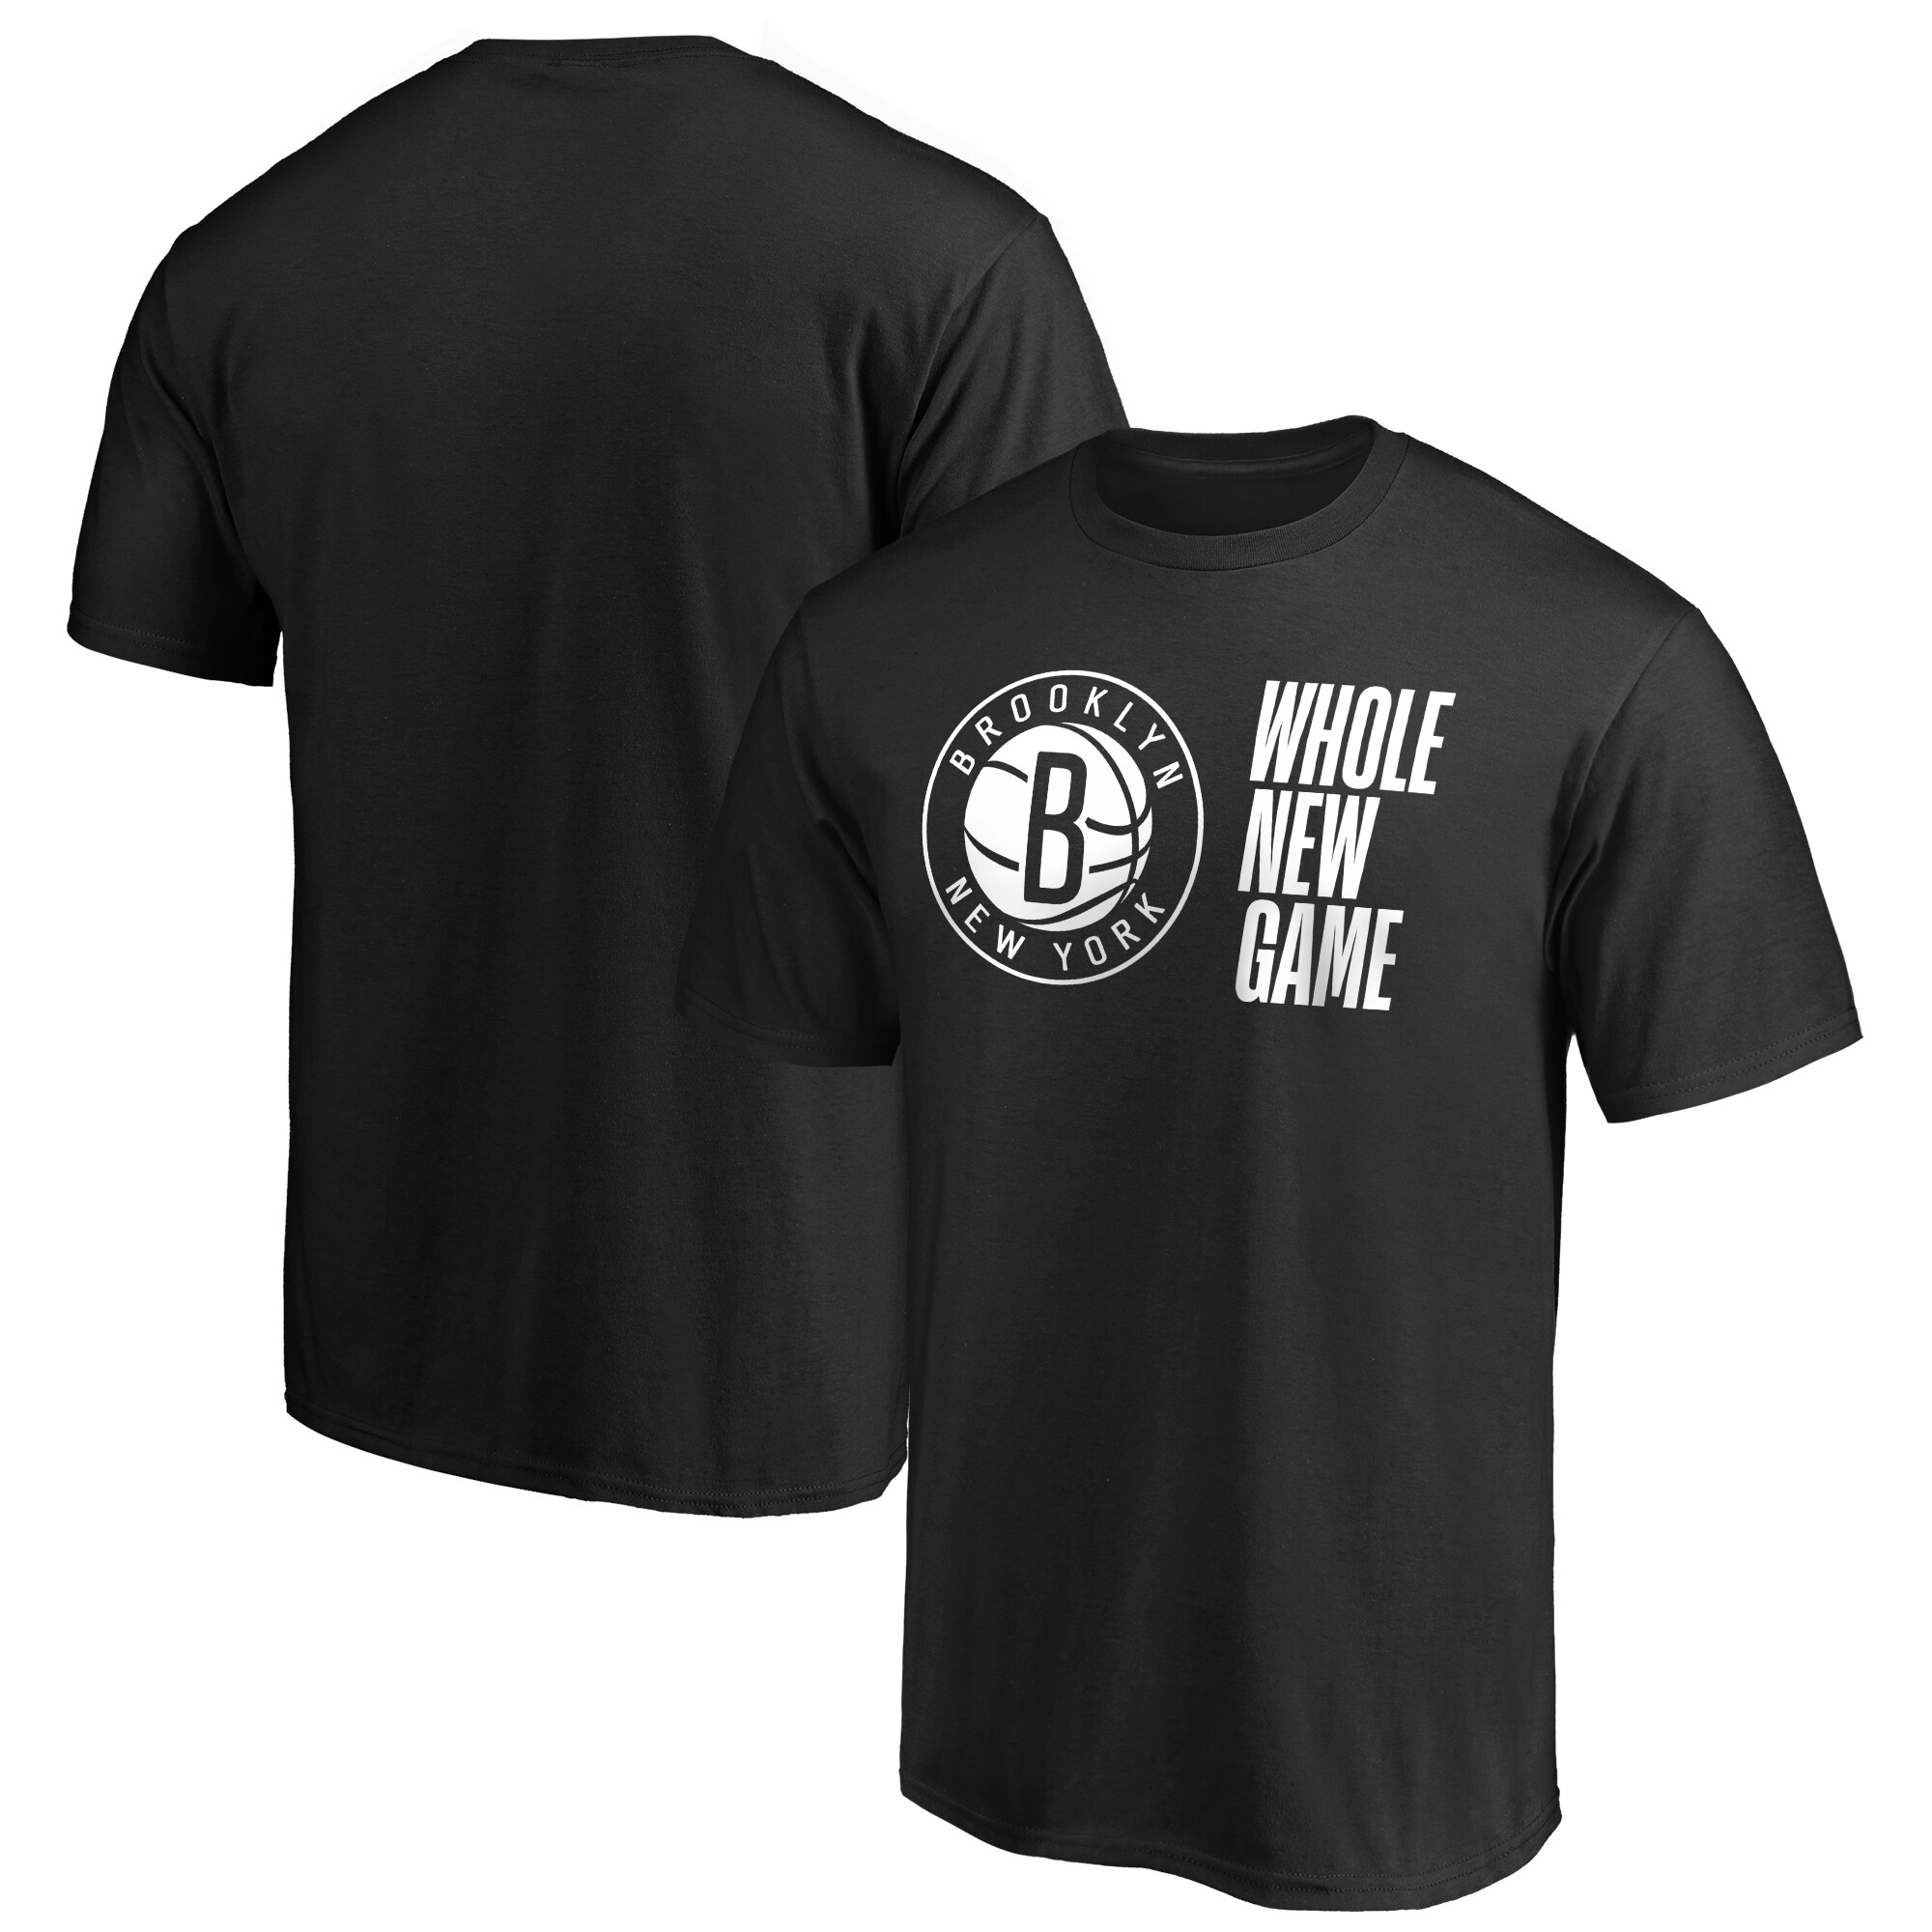 Brooklyn Nets Fanatics Branded Whole New Game Team T-Shirt - Black